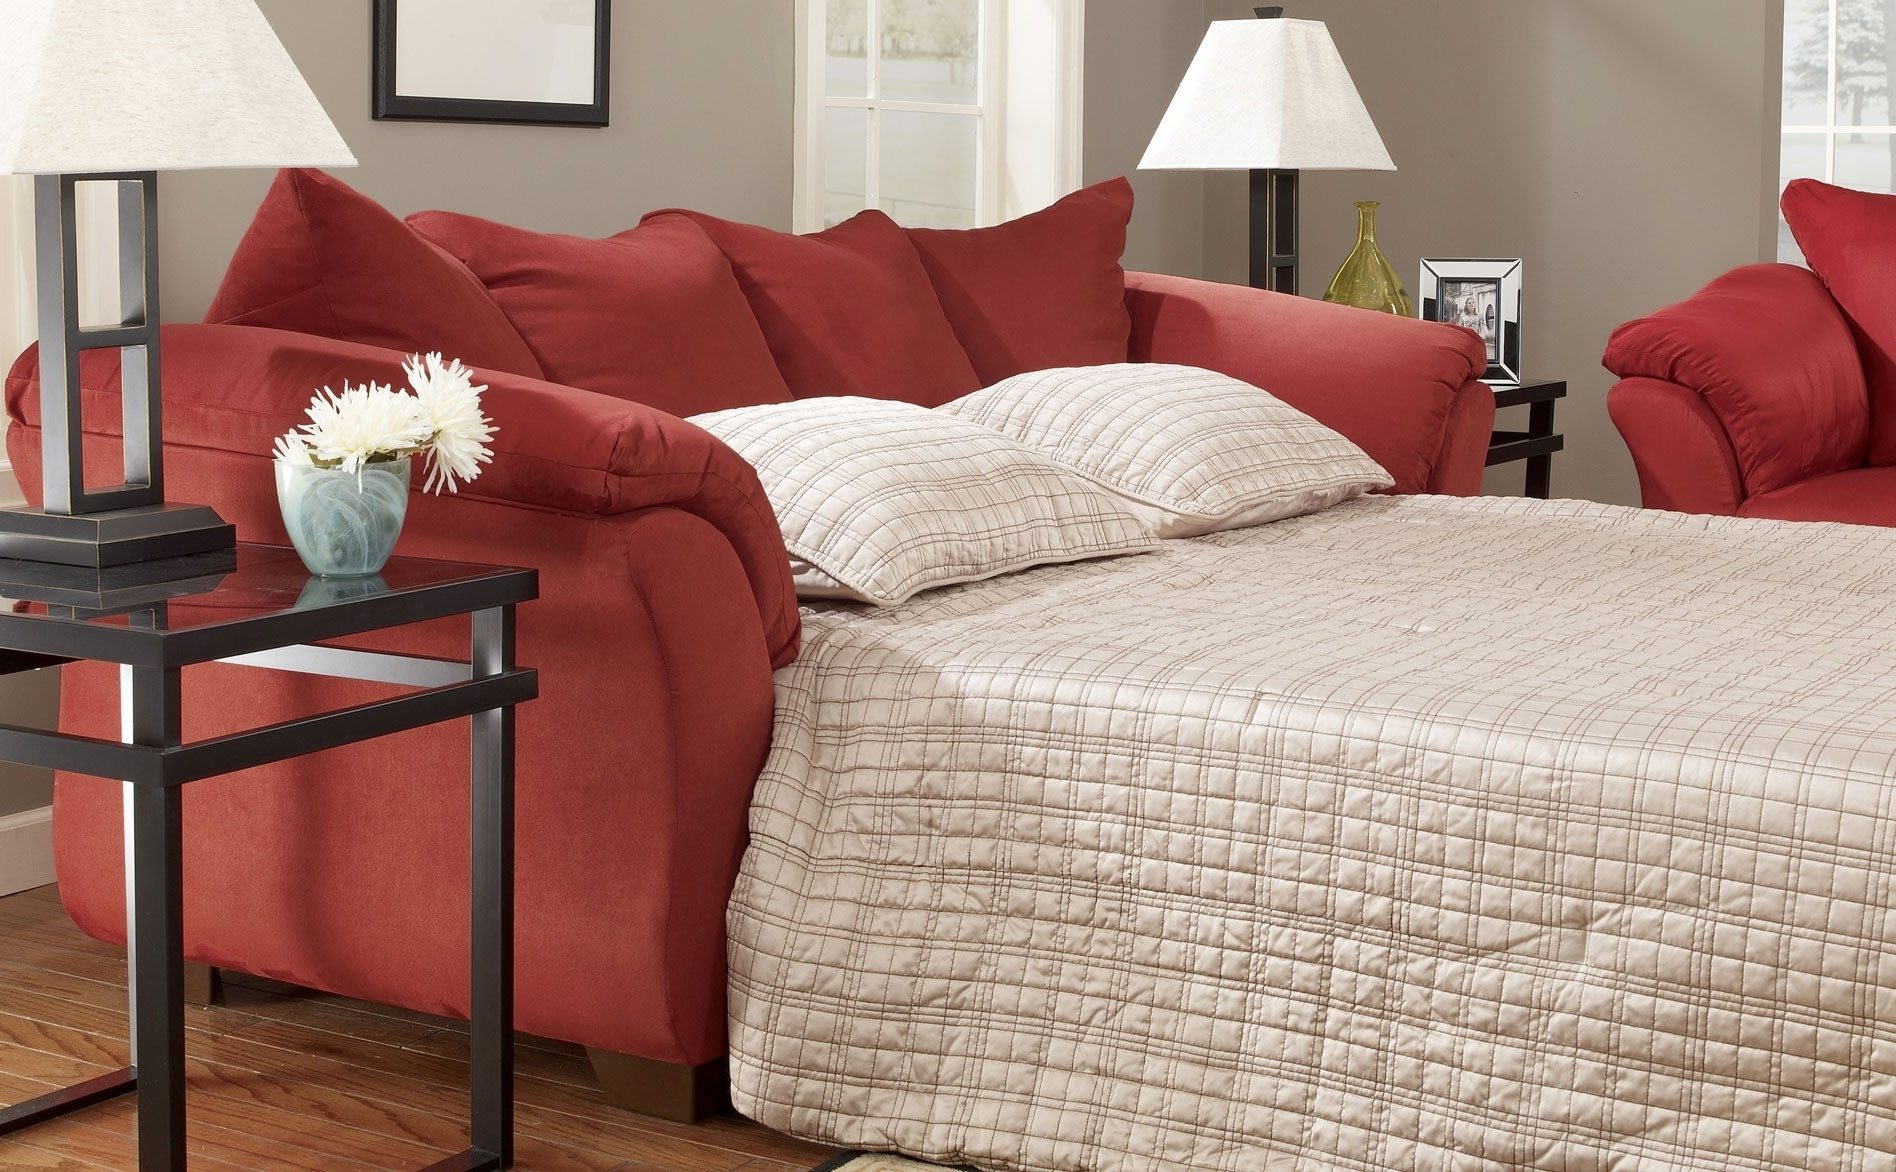 Couch Restuffing Cost | Restuffing Couch Cushions | Restuff Couch Cushions